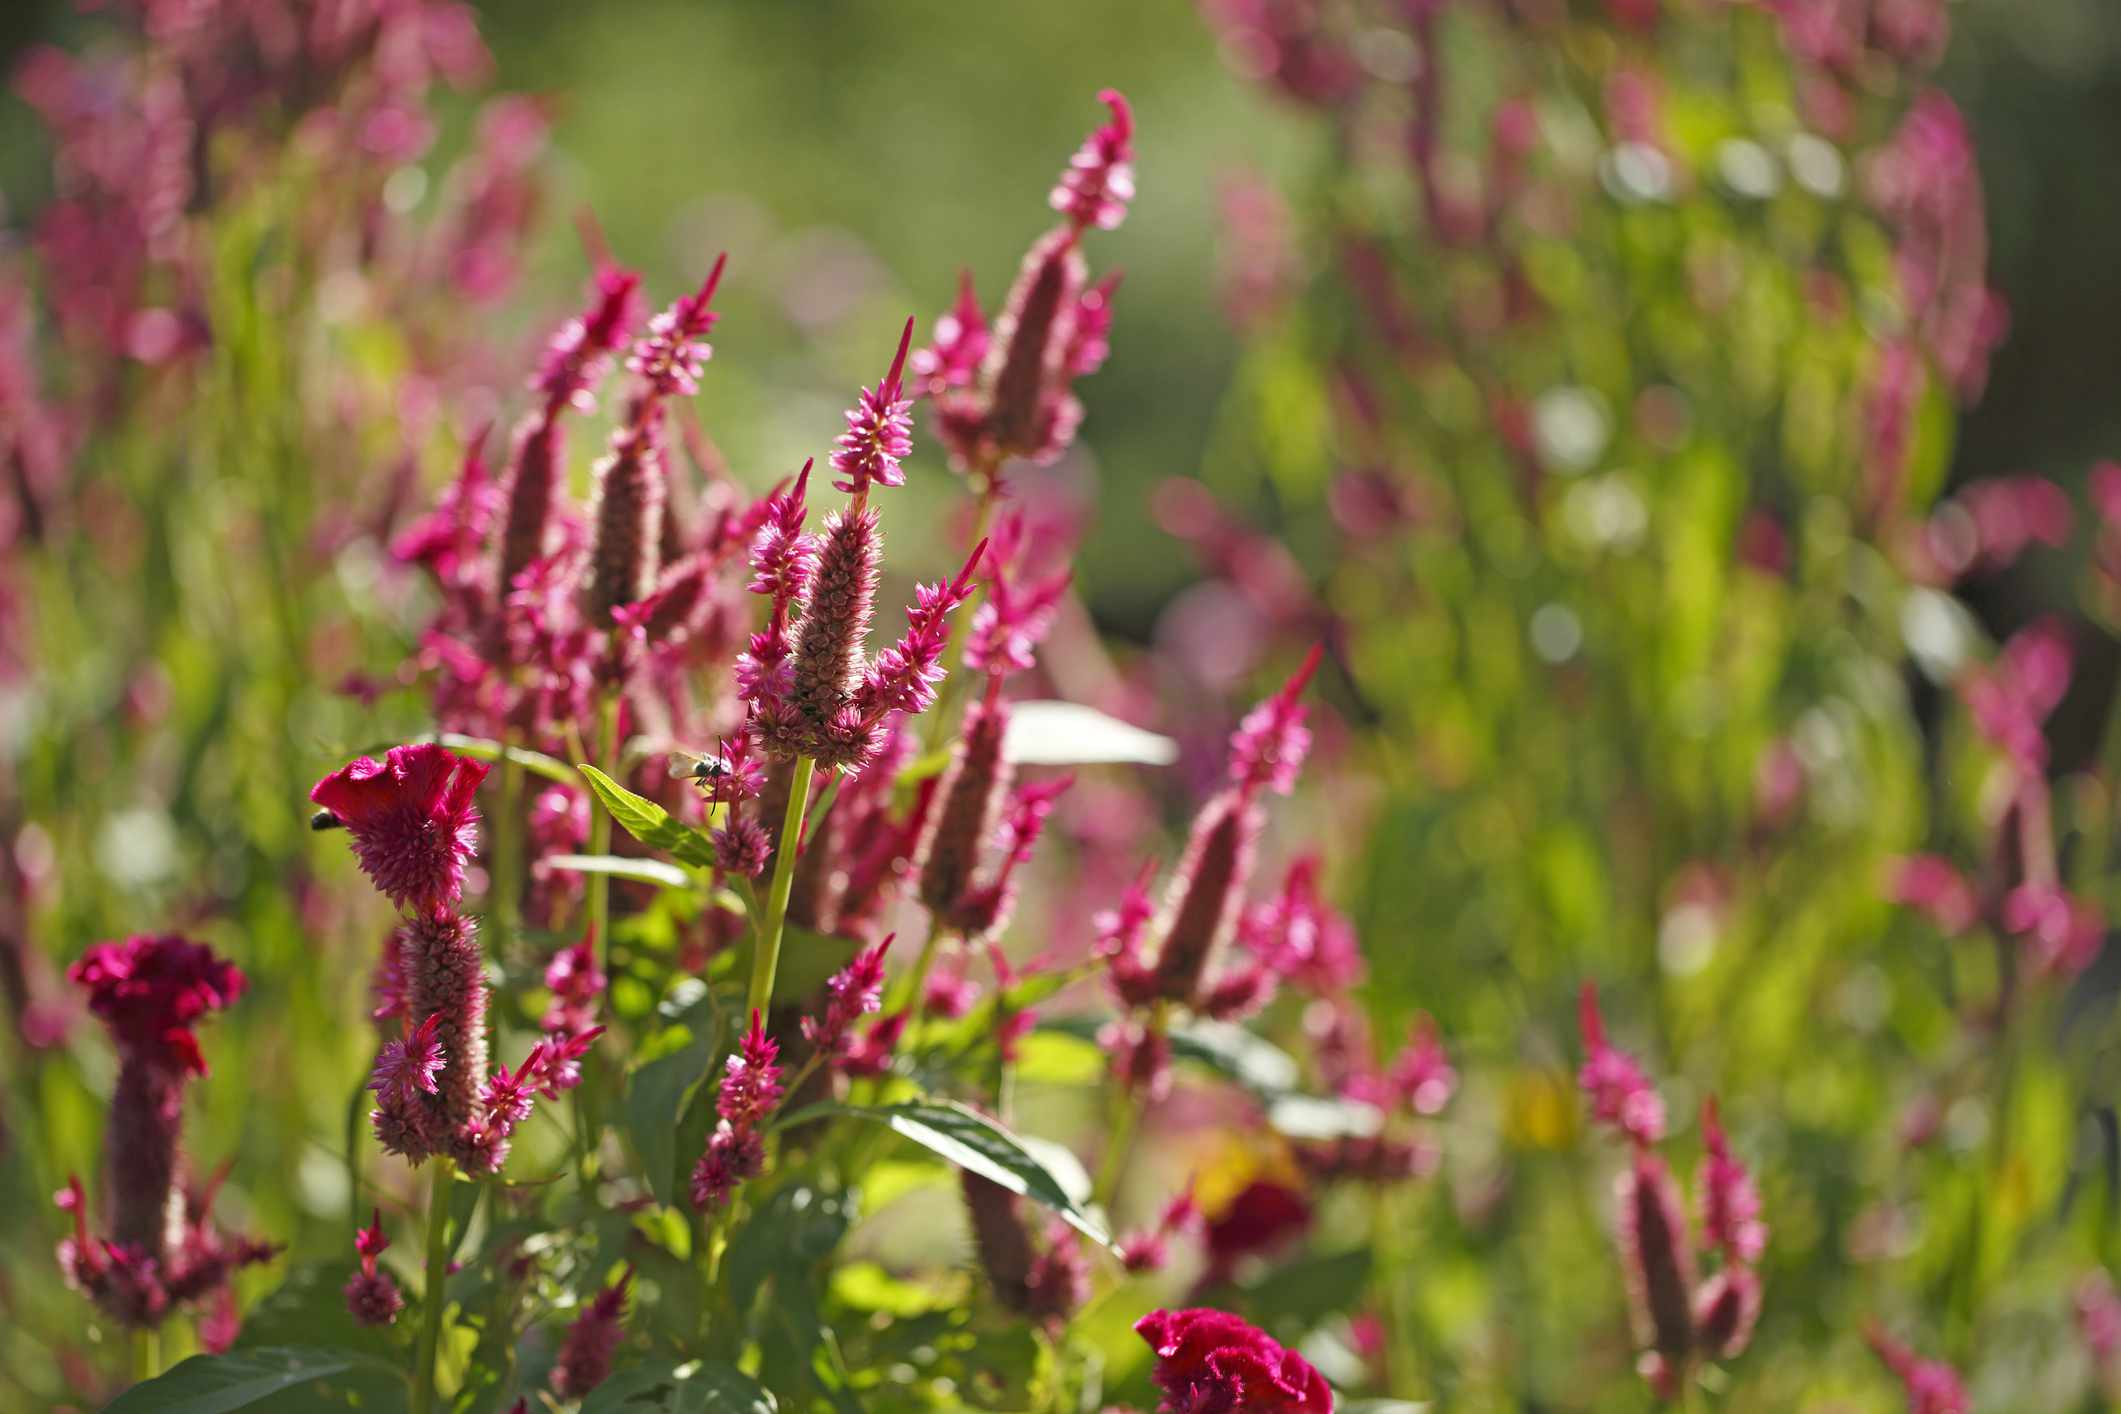 Celosia with red-purple flowers